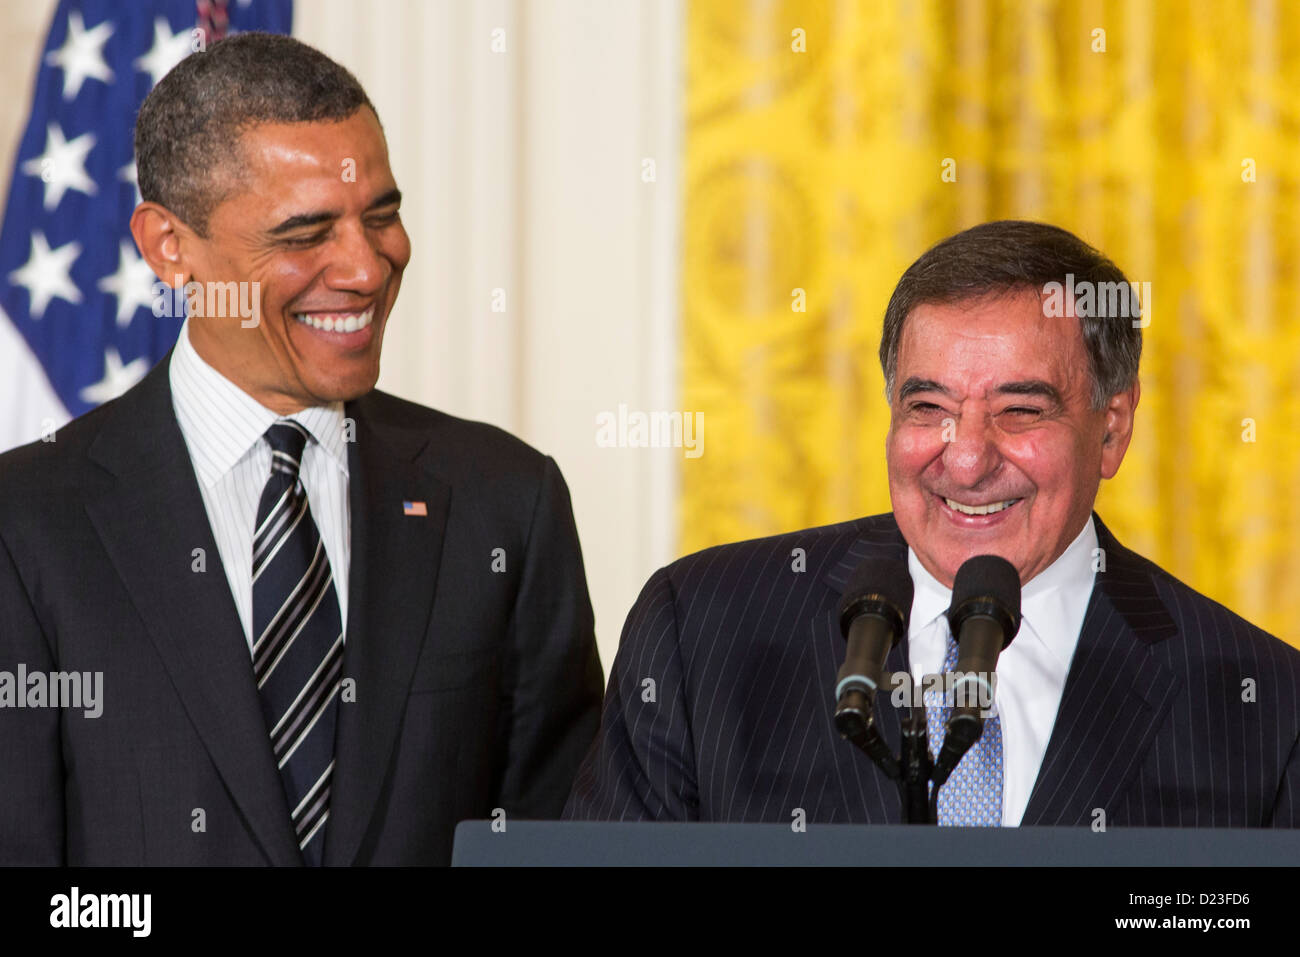 President Barack Obama and outgoing Secretary of Defense Leon Panetta. - Stock Image